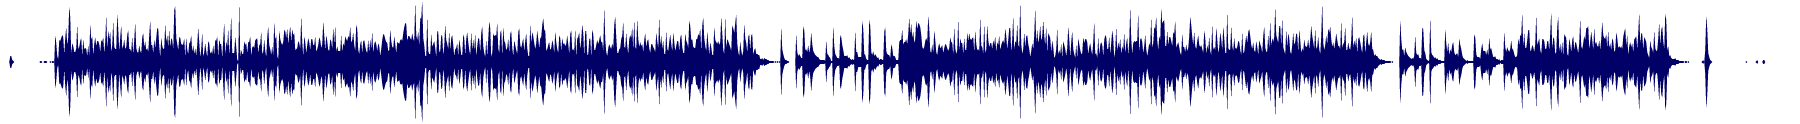 waveform of track #72760